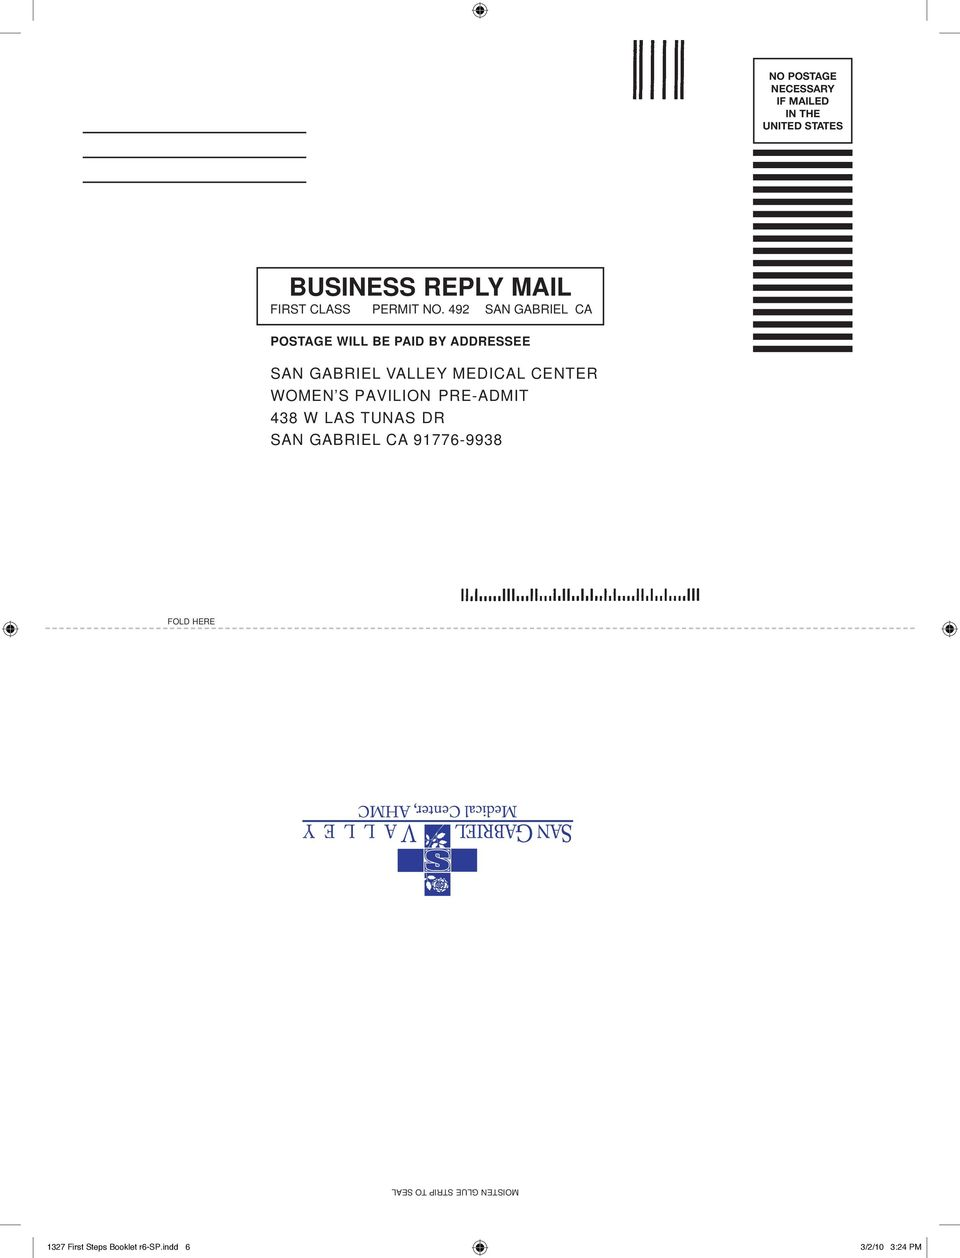 492 SAN GABRIEL CA POSTAGE WILL BE PAID BY ADDRESSEE SAN GABRIEL VALLEY MEDICAL